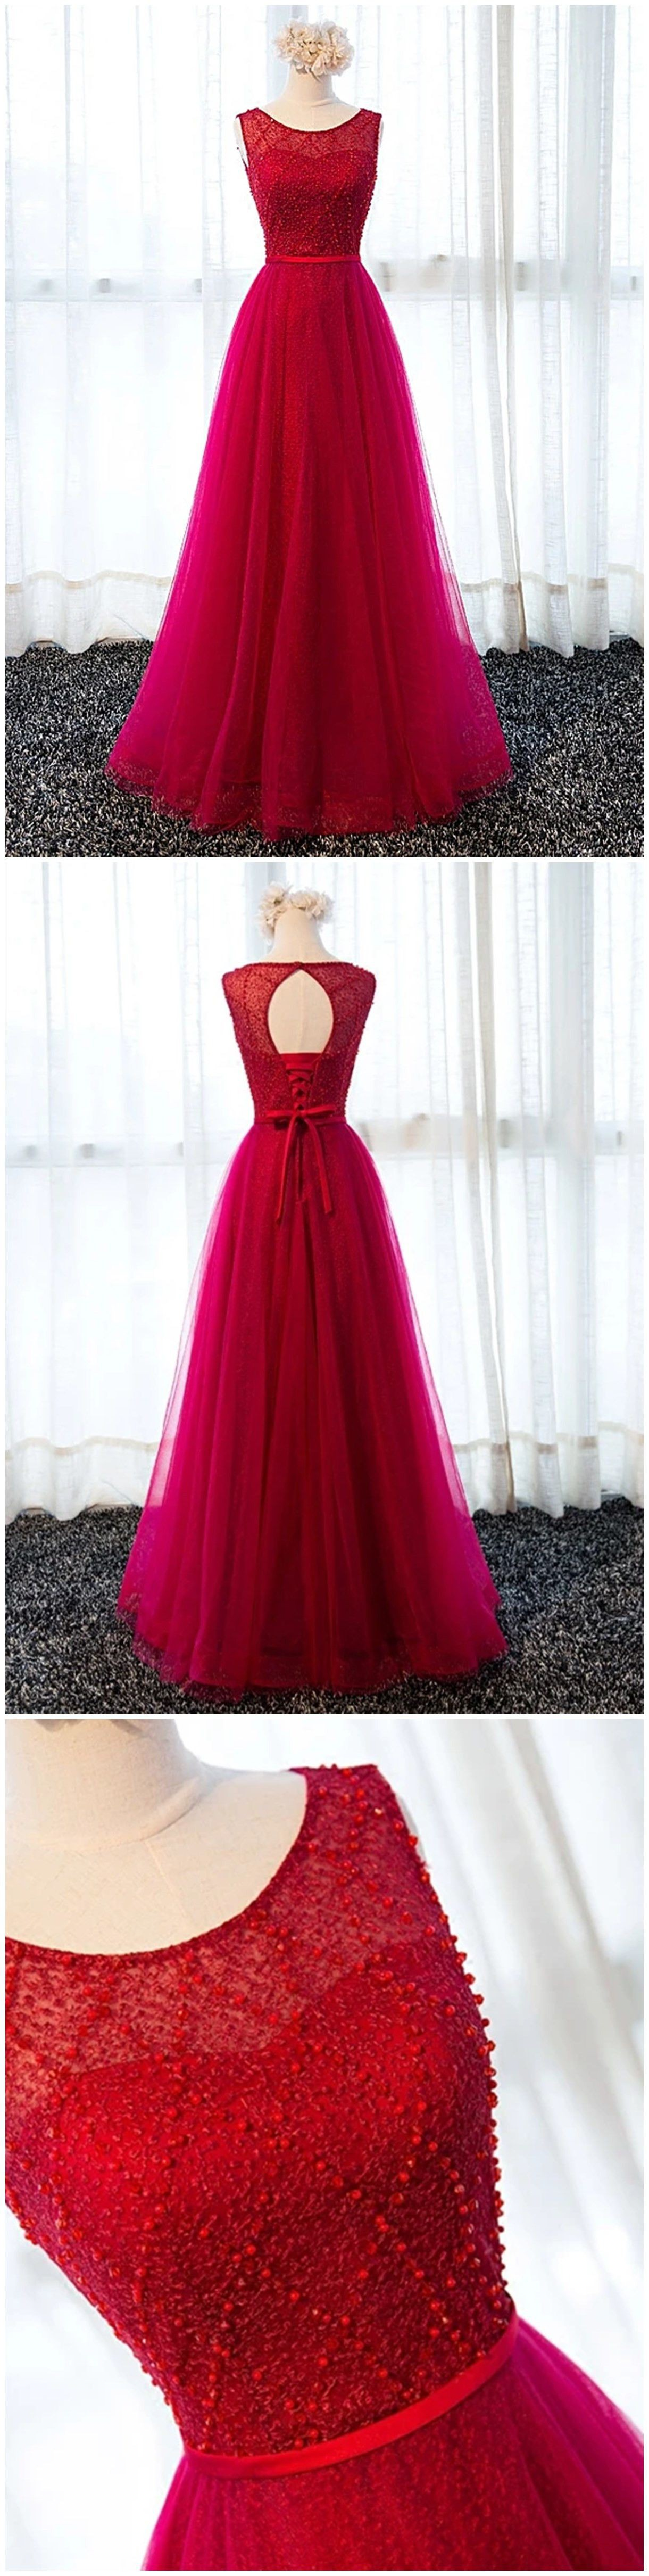 Magenta and pink classy outfit with bridal party dress, strapless dress, wedding dress, formal w ...